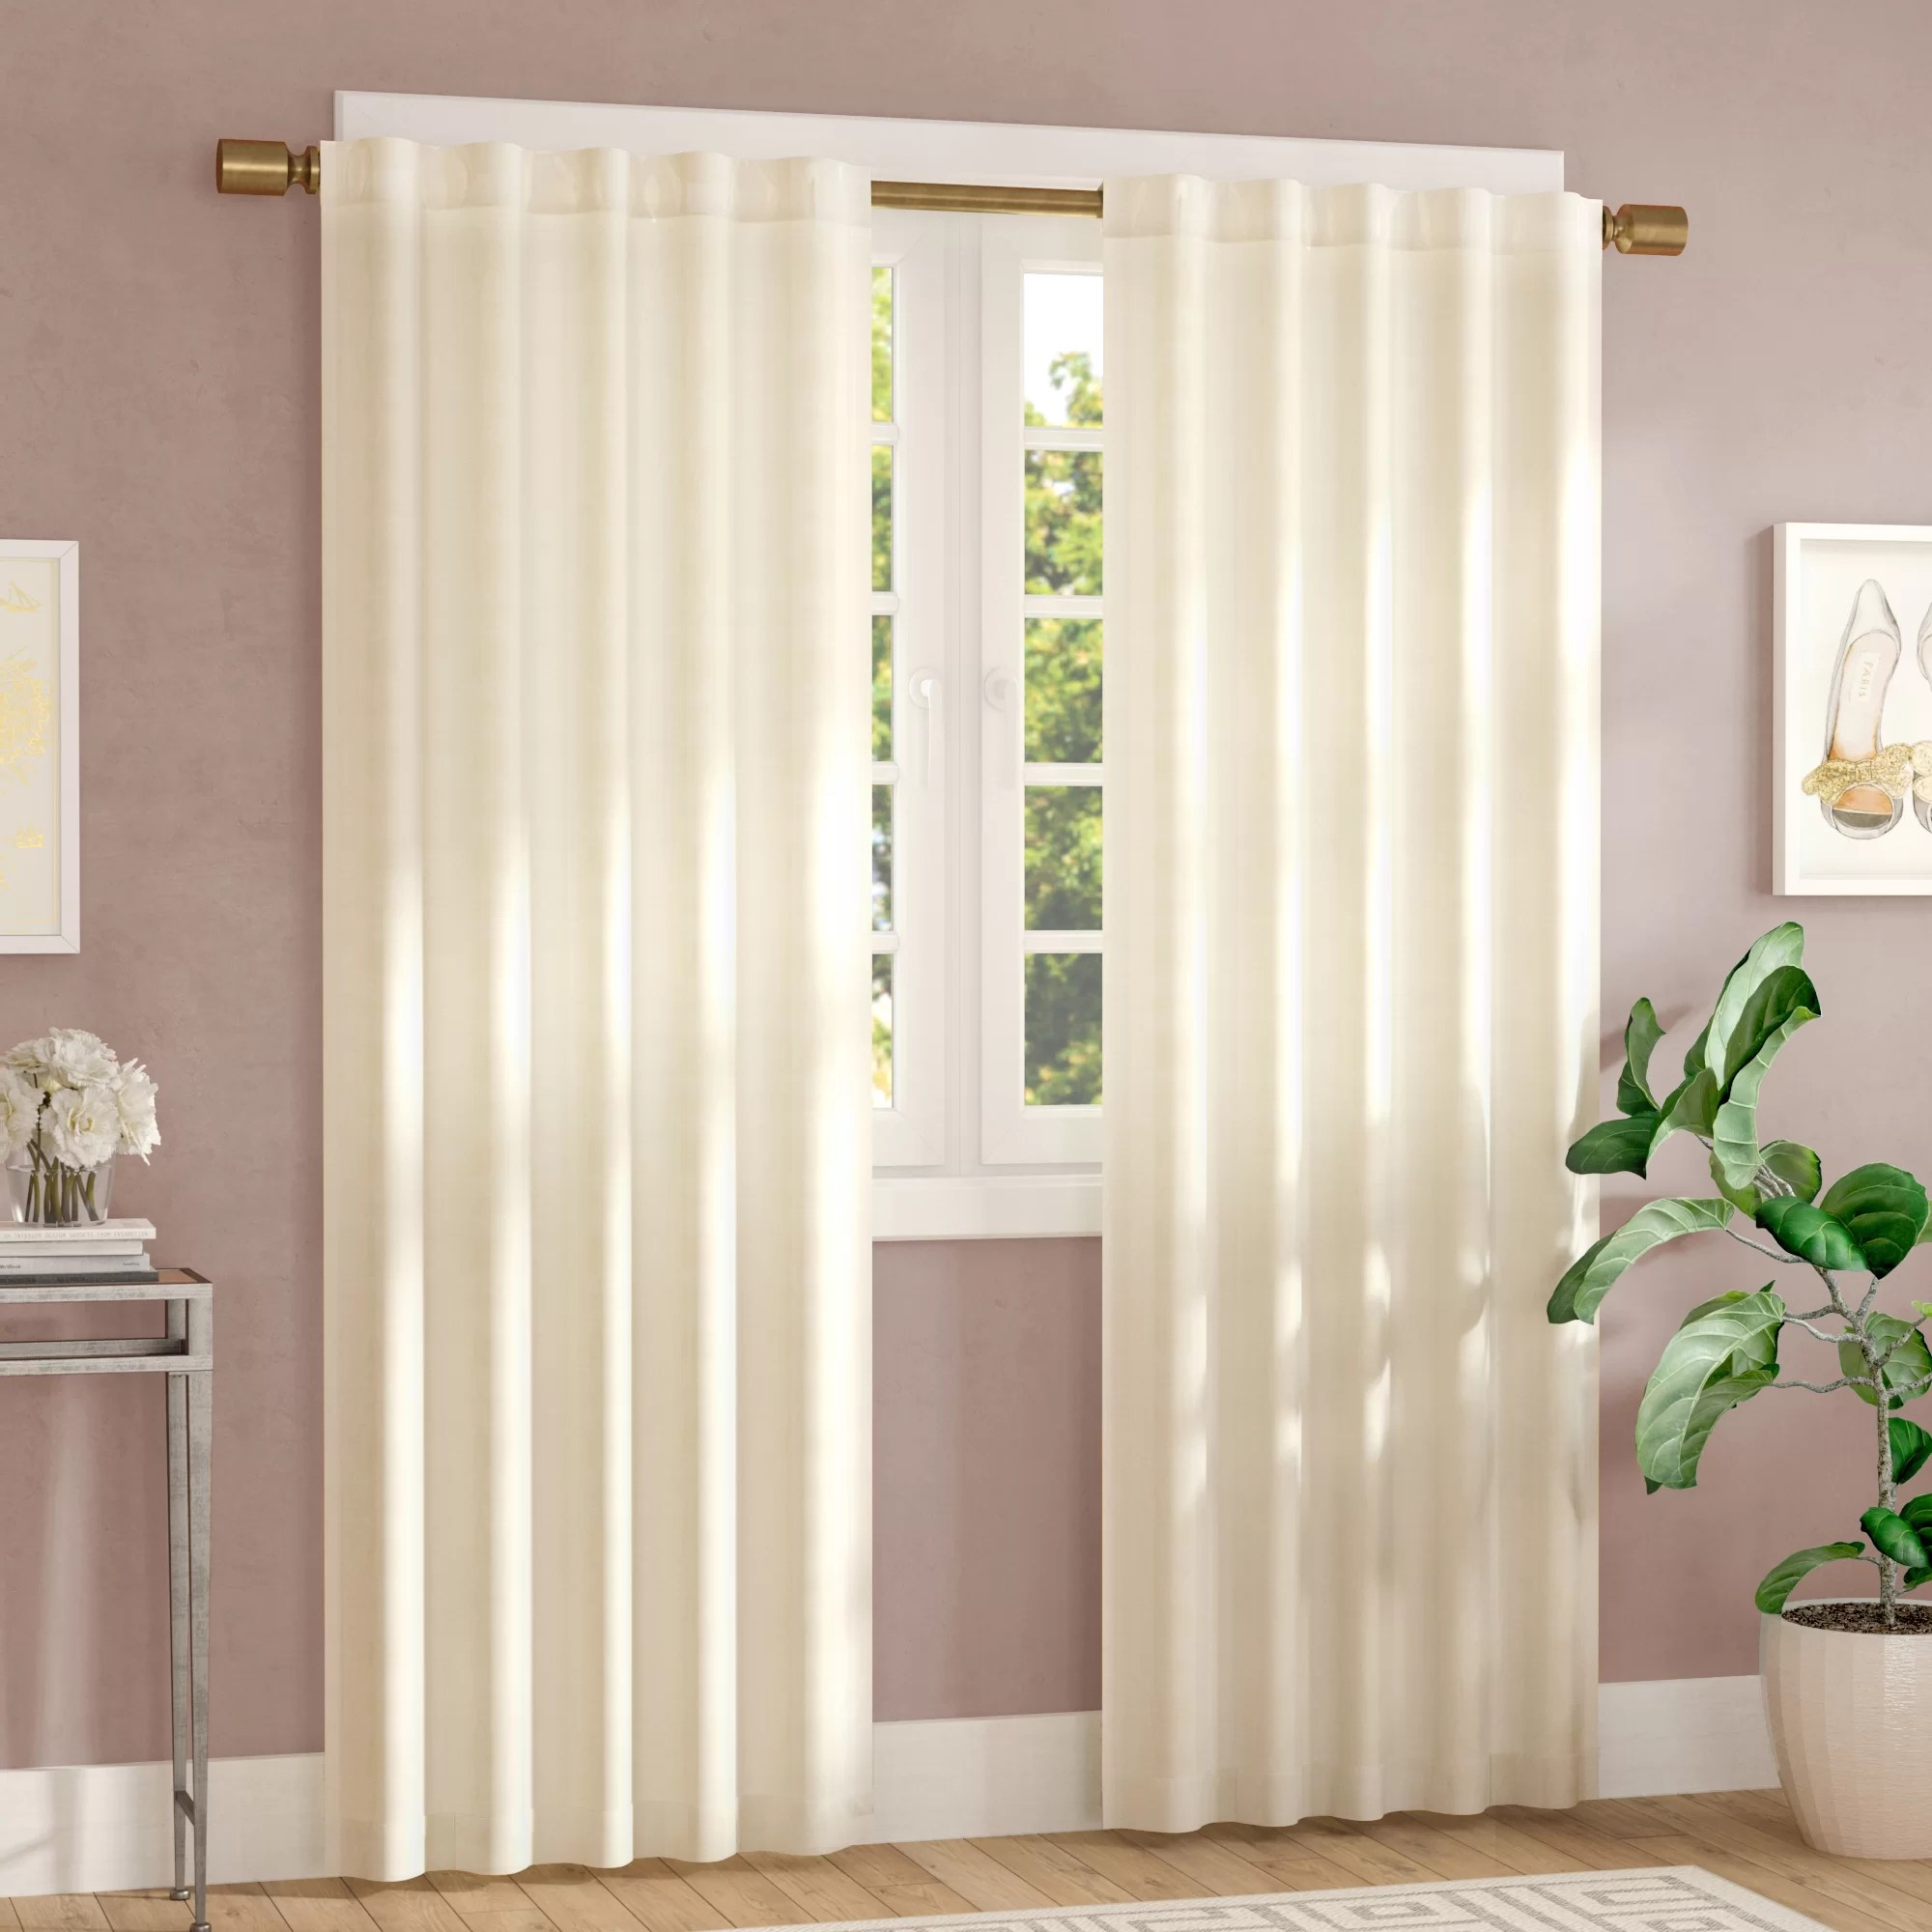 36 Inch Room Darkening Curtains Java Poly Velvet Solid Room Darkening Rod Pocket Tab Top Curtain Panels